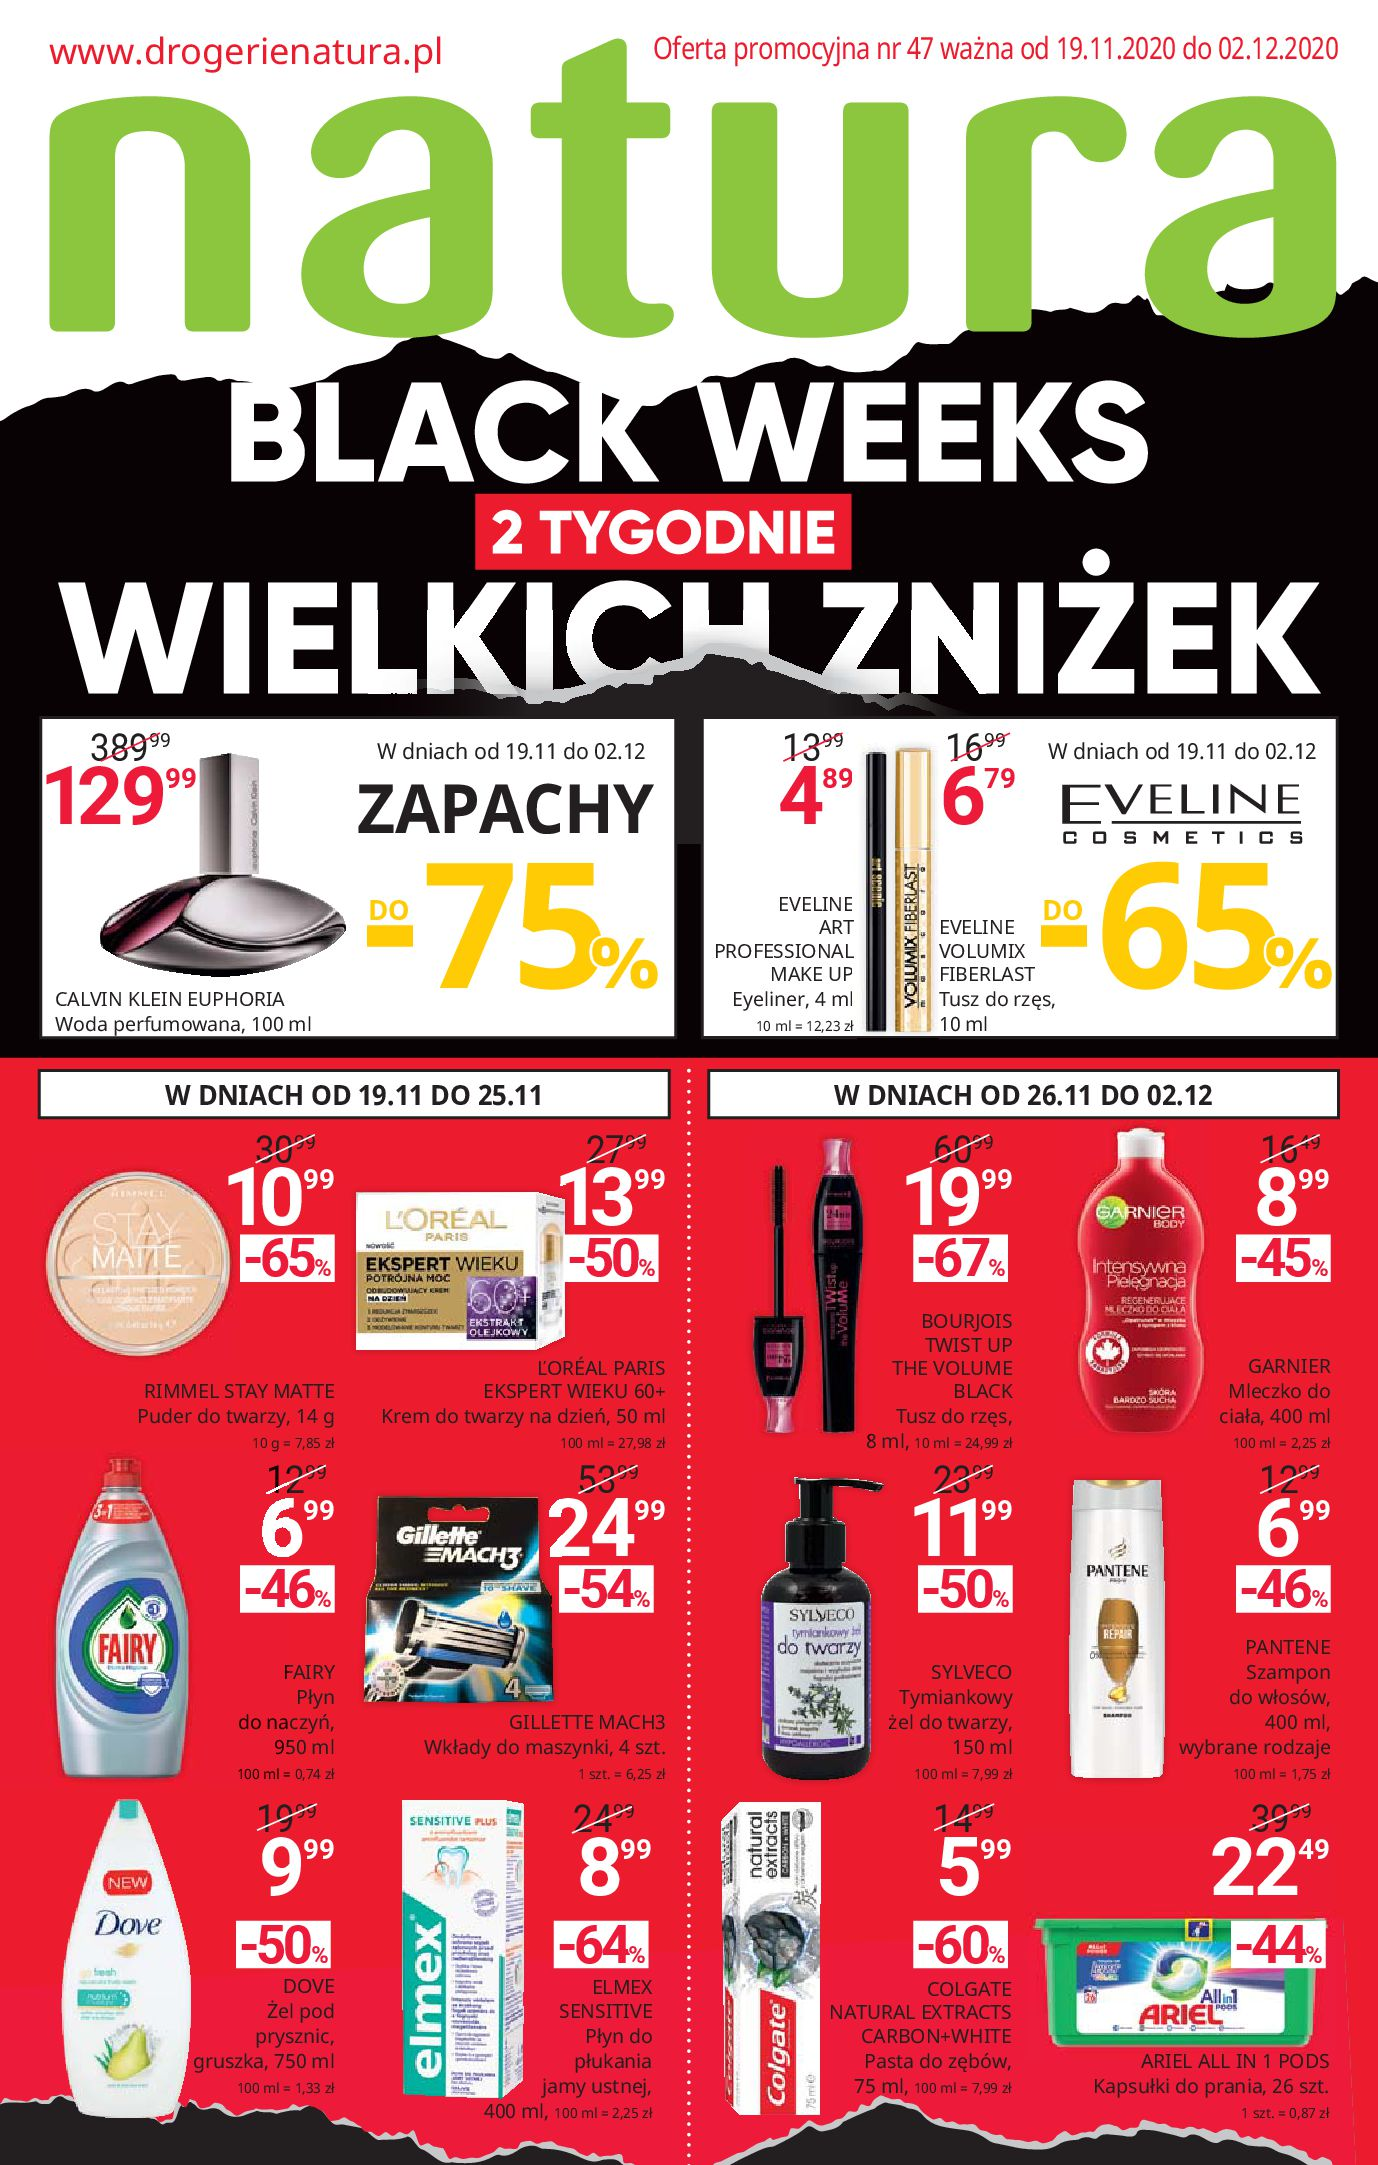 Drogerie Natura:  Black Weeks 18.11.2020